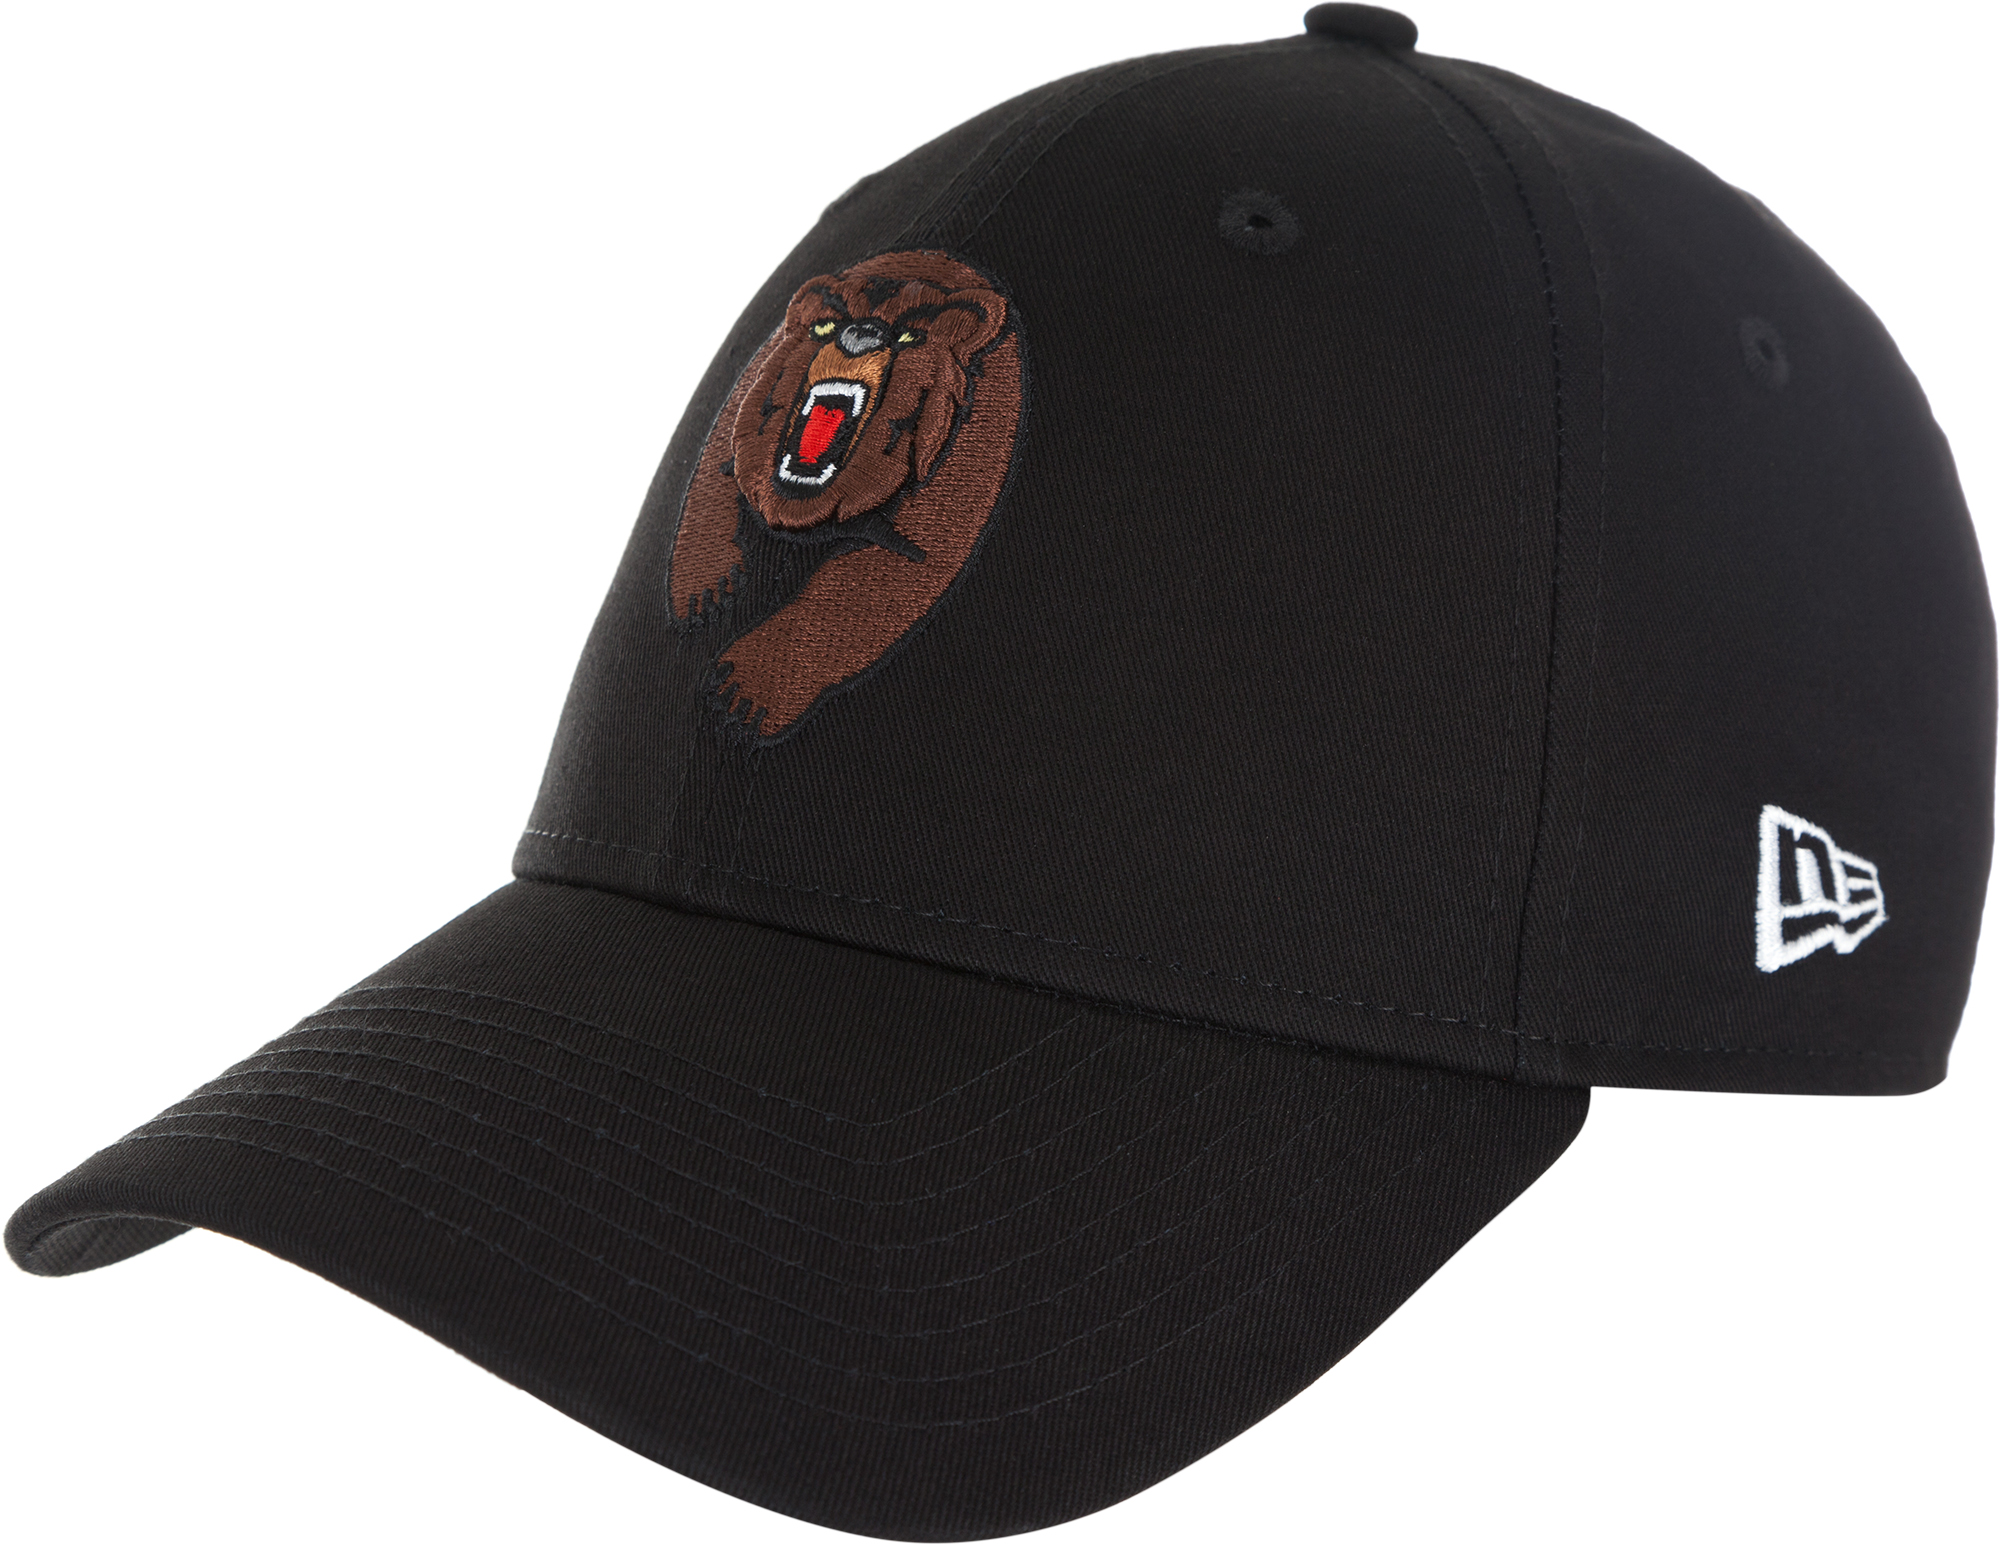 New Era Бейсболка New Era 9Forty Bear new era бейсболка мужская new era